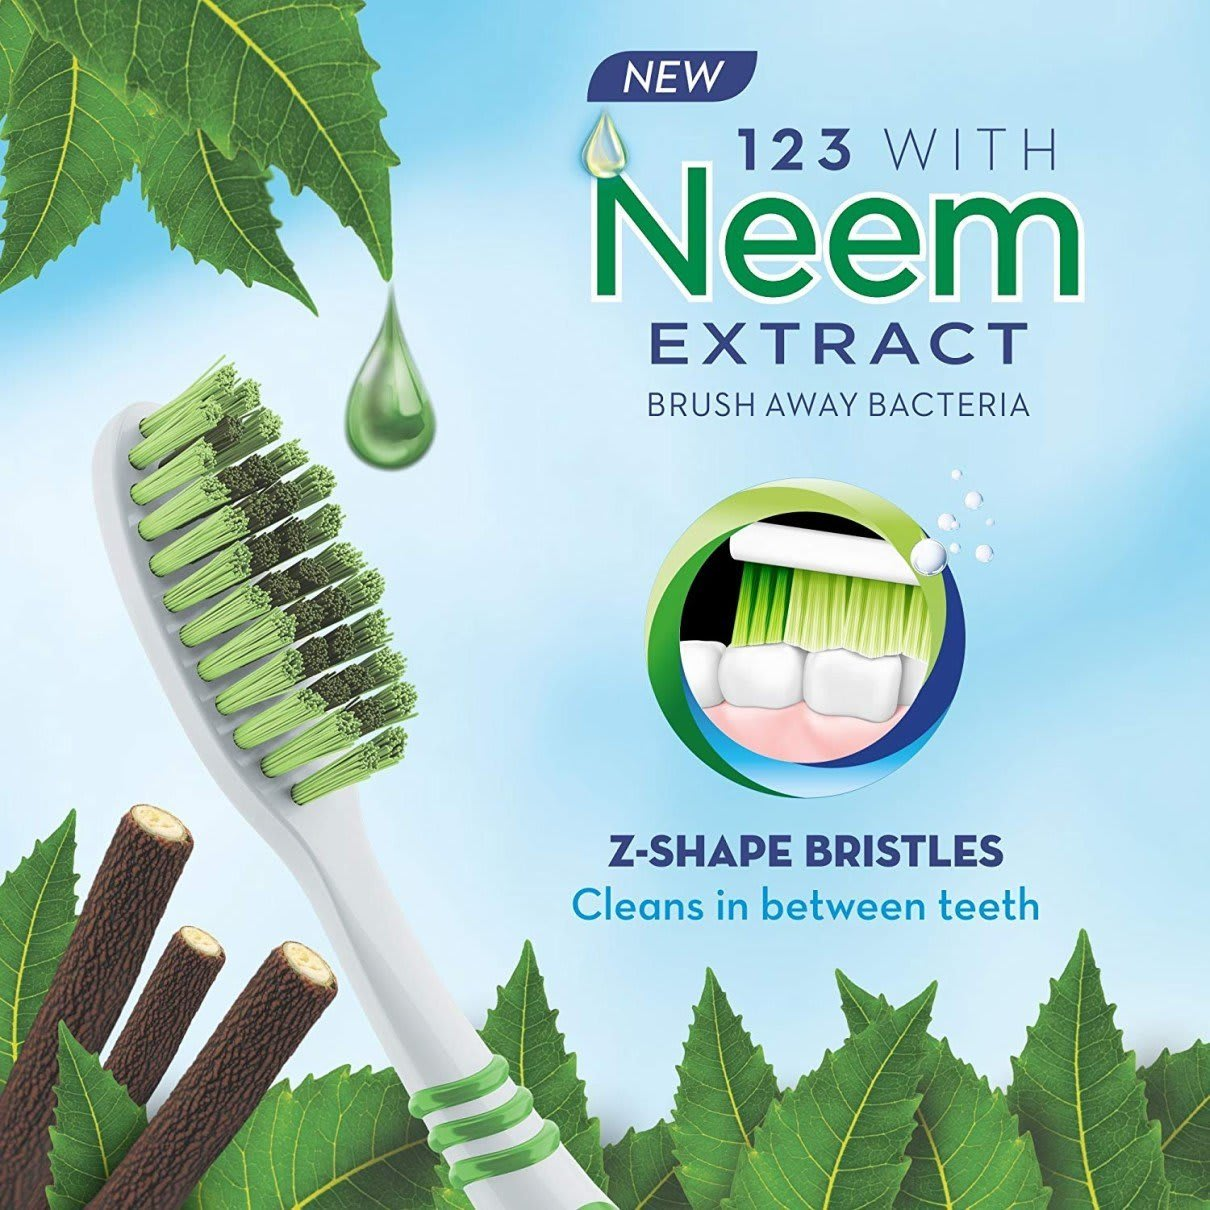 Oral-B 123 toothbrush with Neem Extract